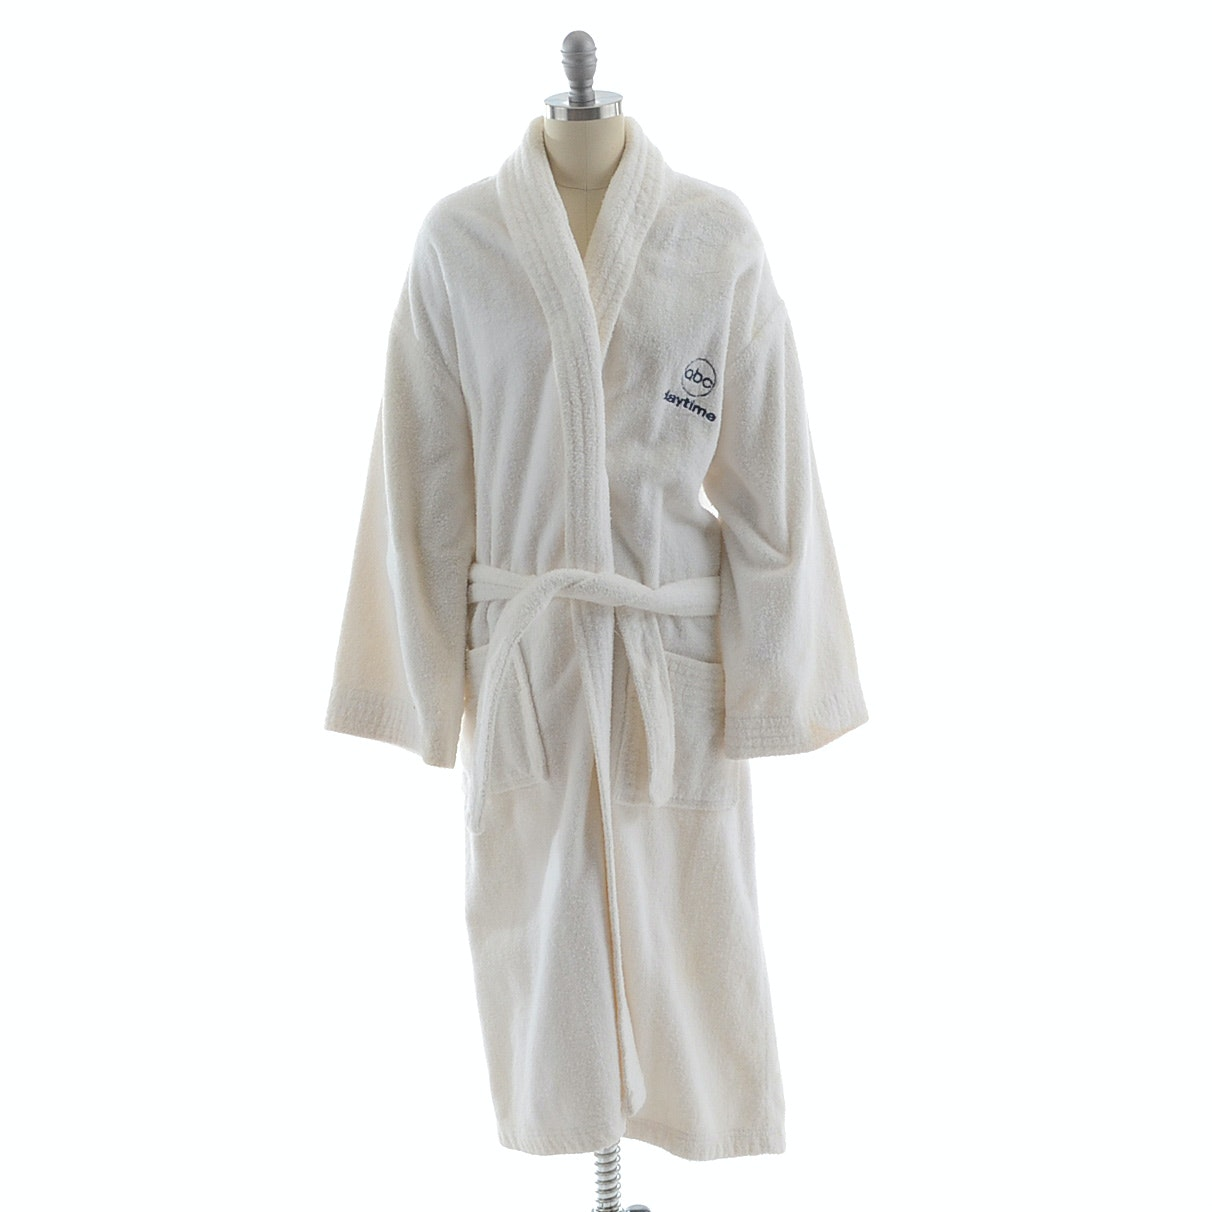 """ABC Daytime"" Embroidered White Terry Cloth Robe"